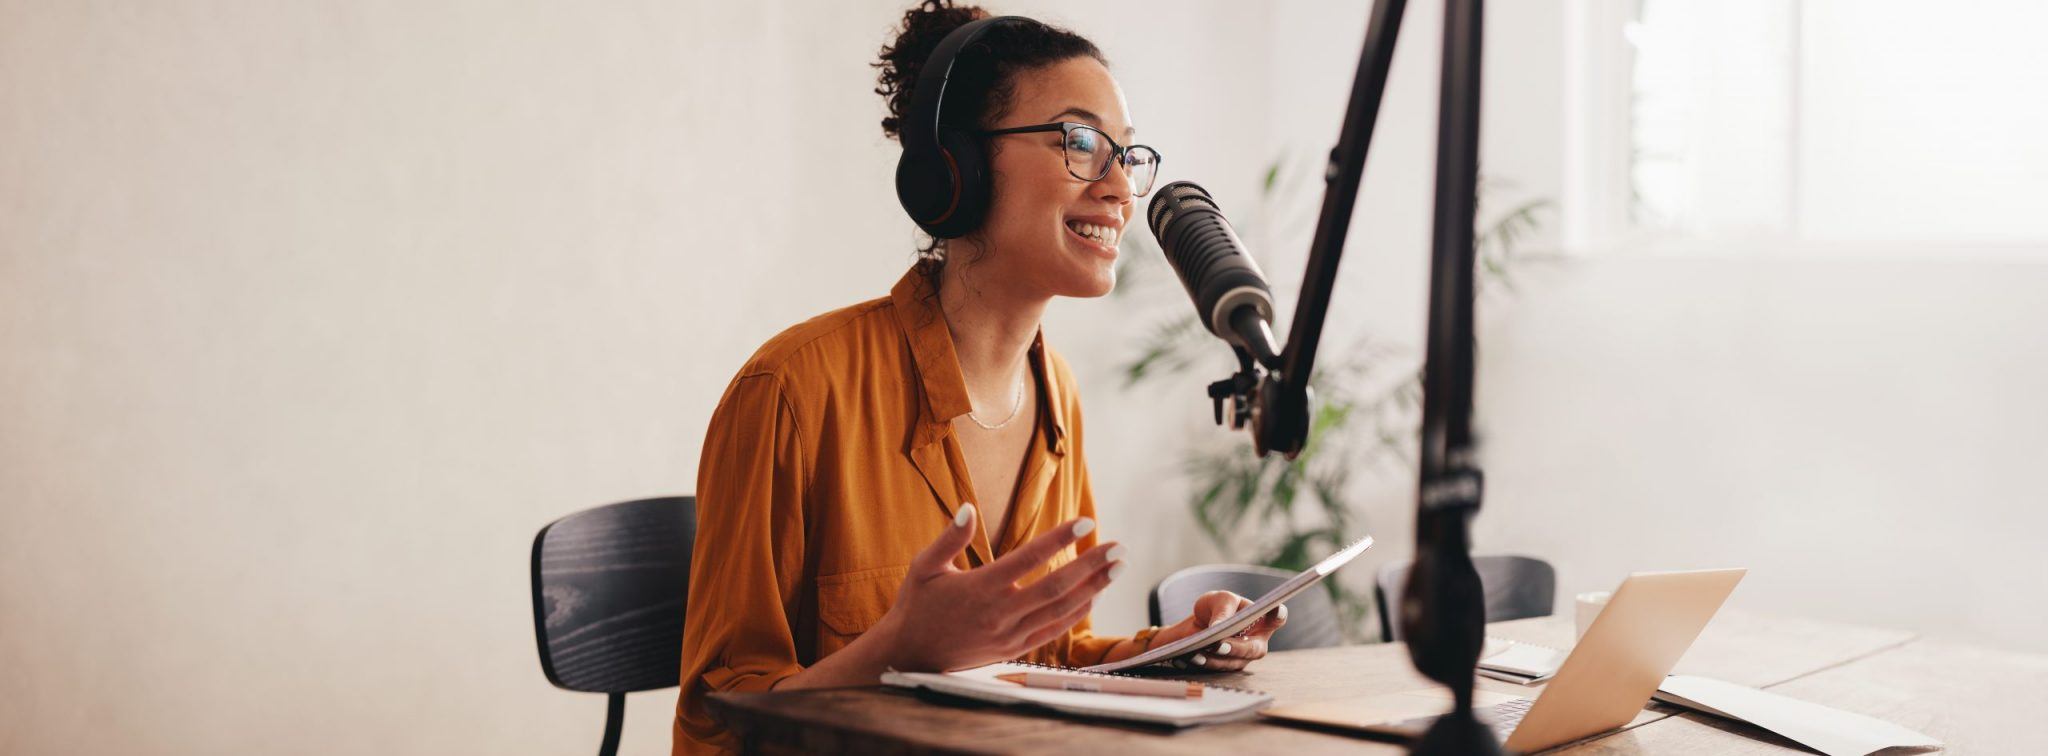 Woman recording a podcast on her laptop computer with headphones and a microphone.